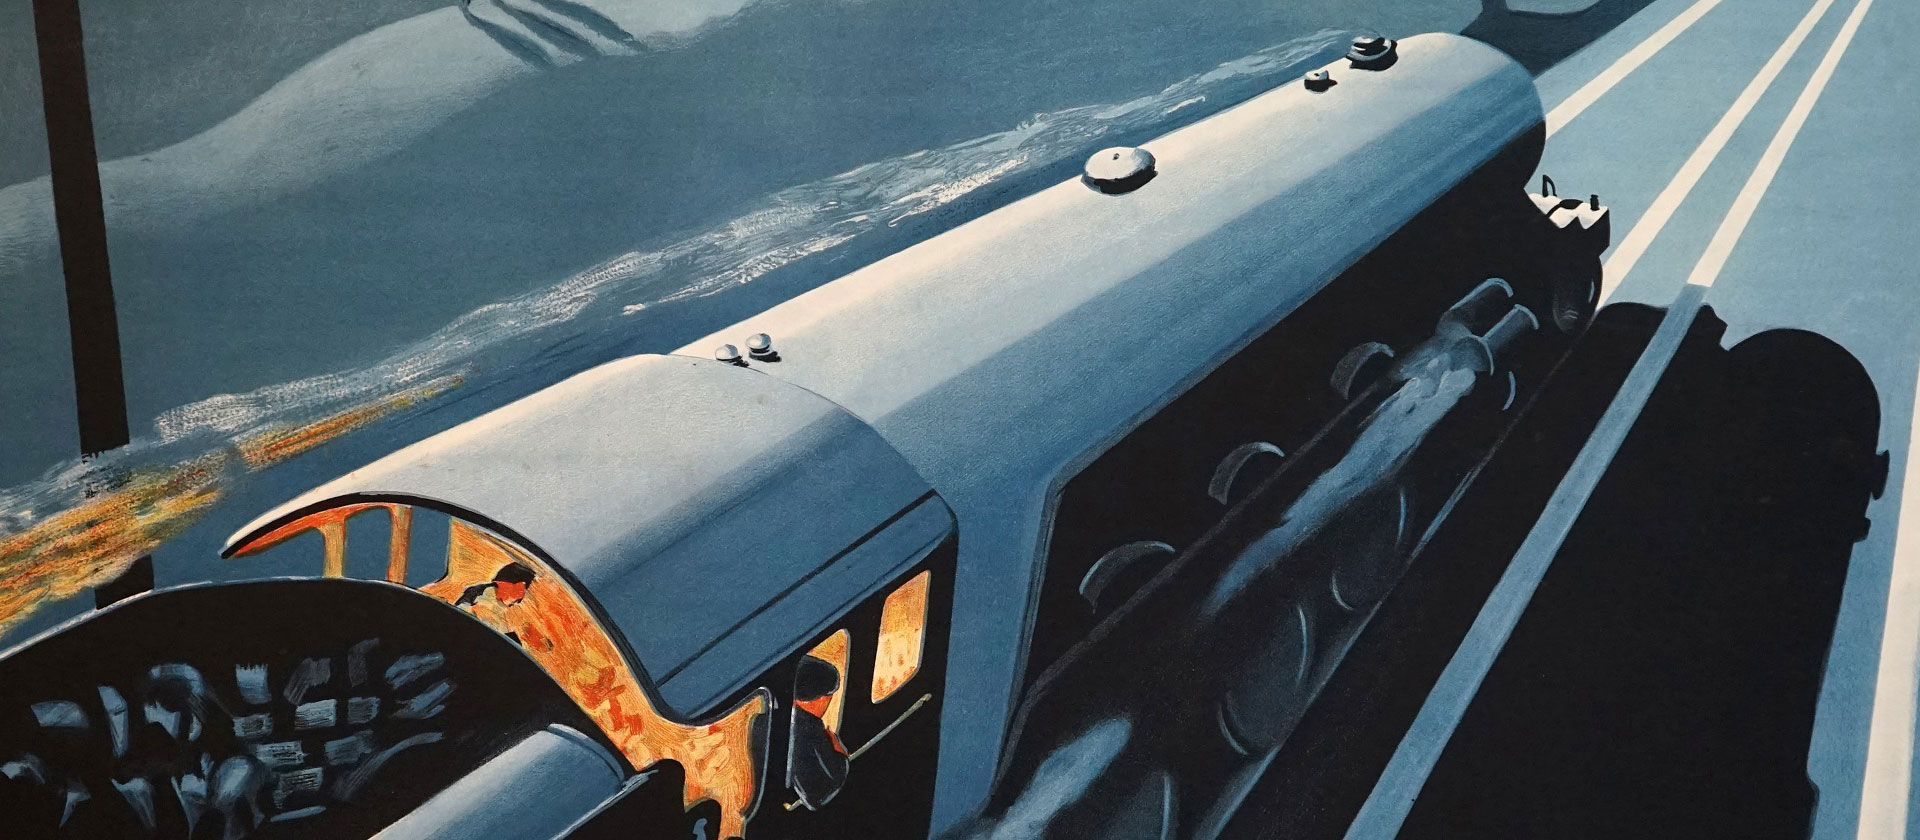 "Detail from Robert Bartlett's famous ""The Night Scotsman"" poster. The poster was one of a series commissioned by LNER to promote both daytime and overnight trains from London to Scotland."